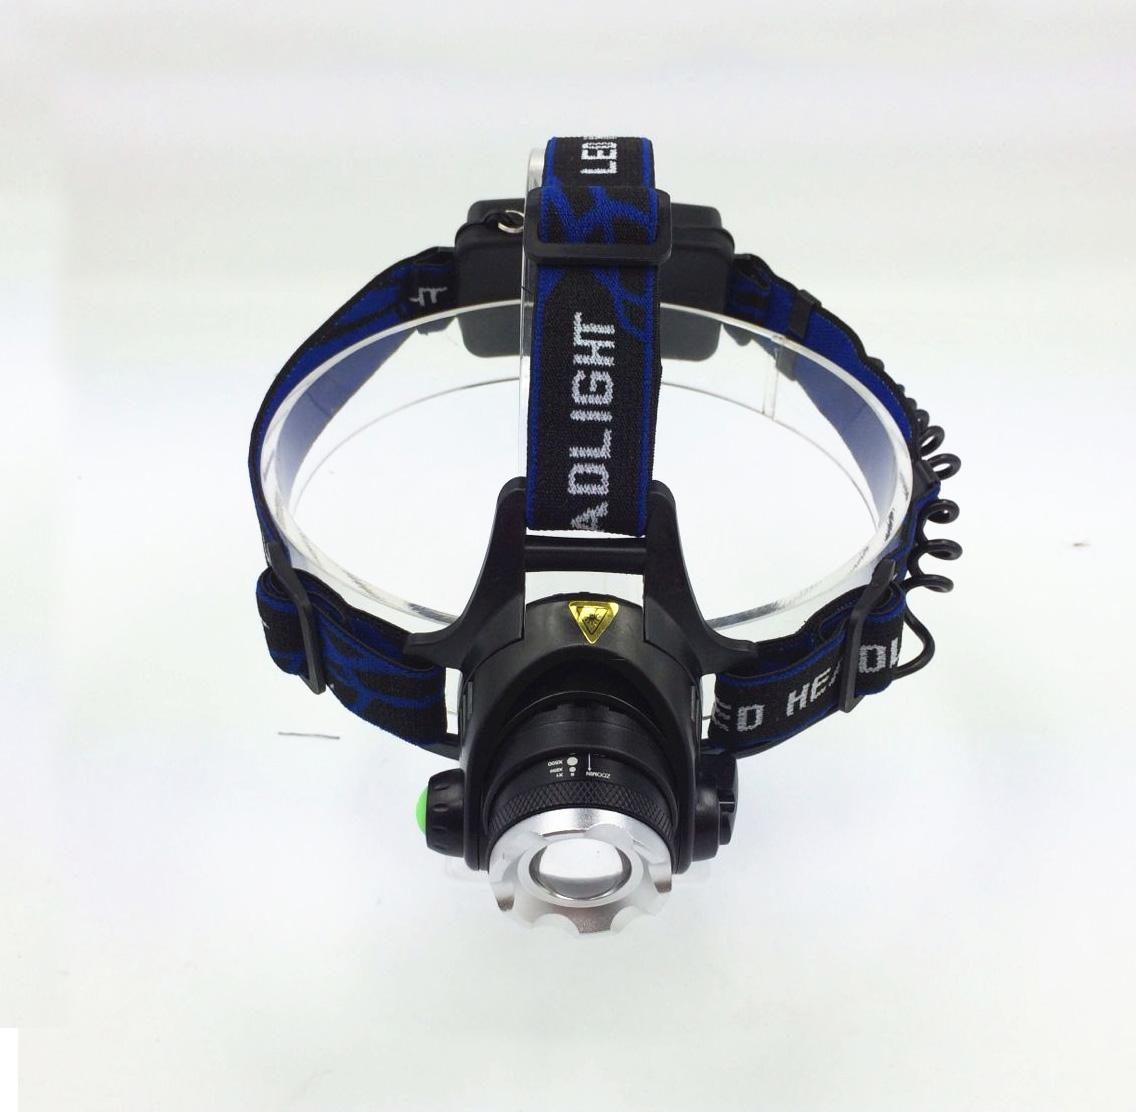 2016 Headlamp Head Torch Lamp Flashlight Strong Light Led Zoom 3 Fuso Mode Waterproof For Fishing Riding Headlight